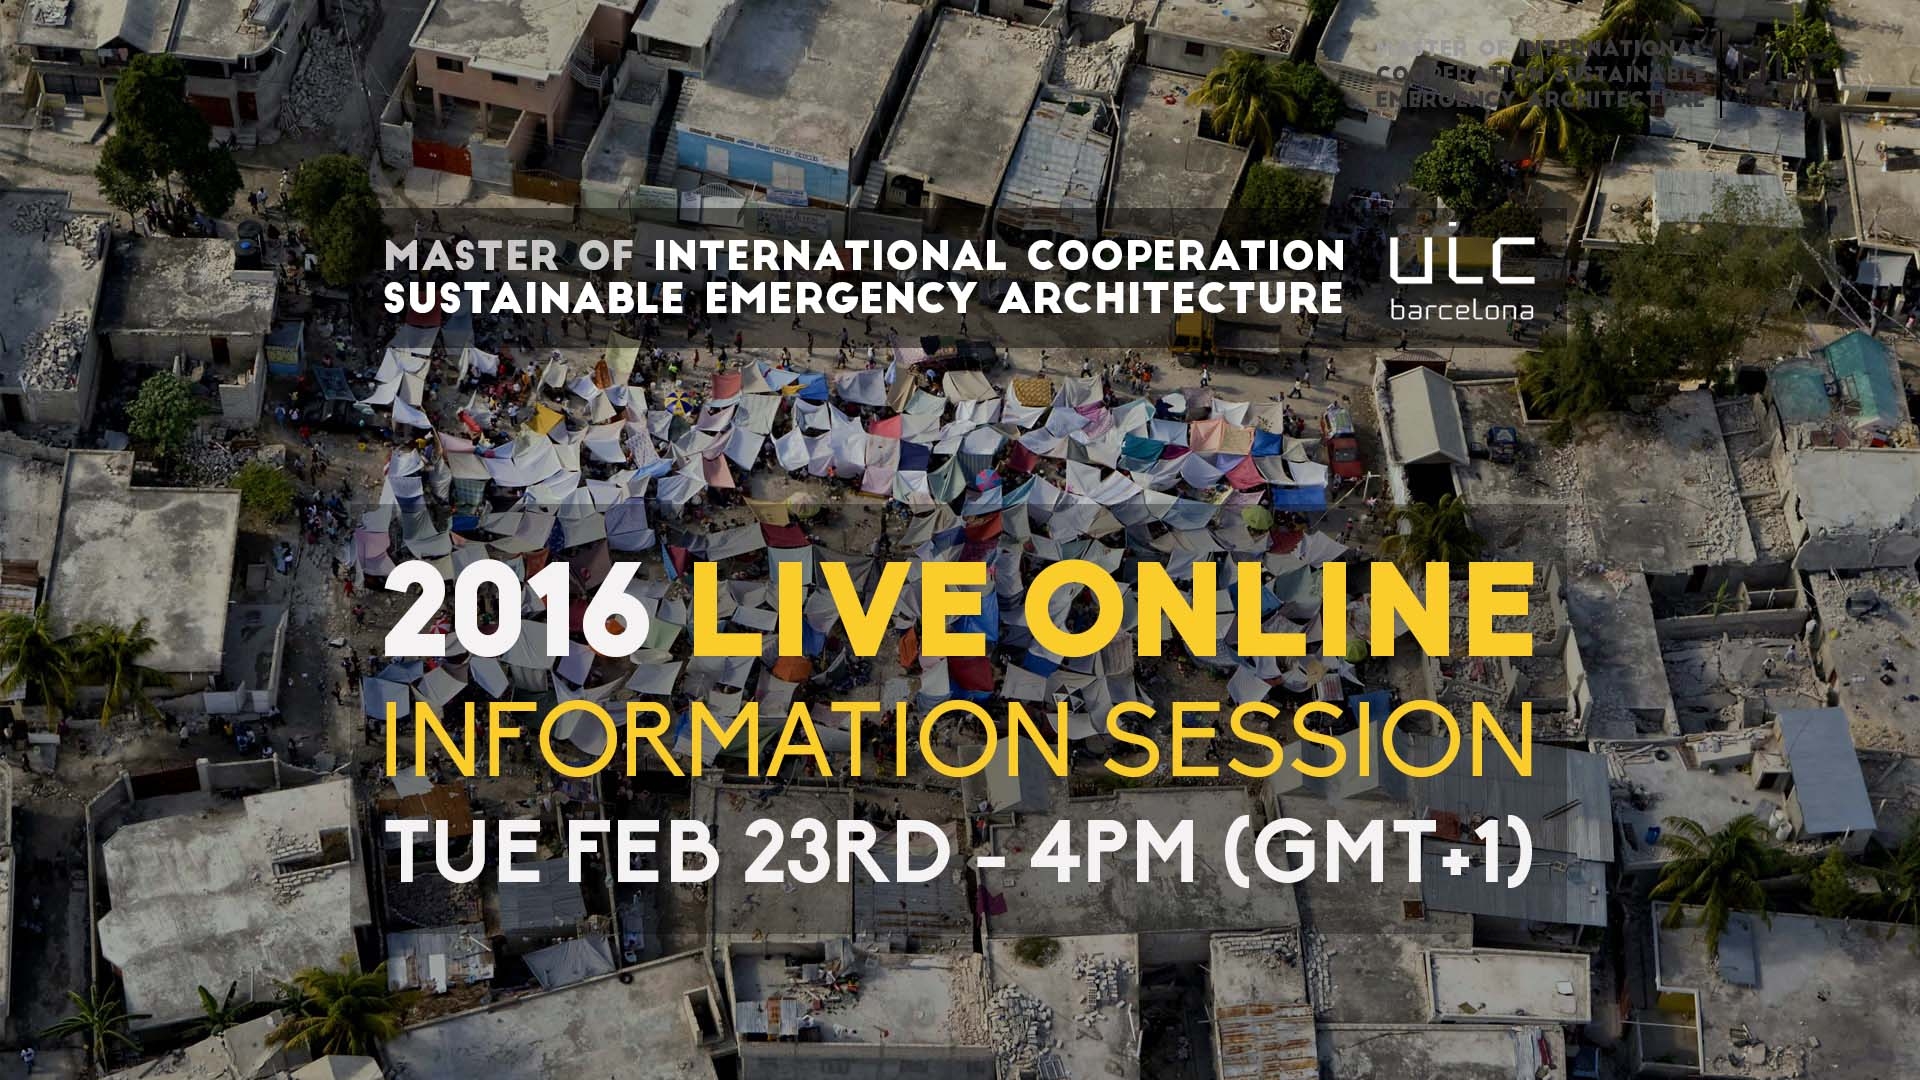 INFO_SESSION_2016